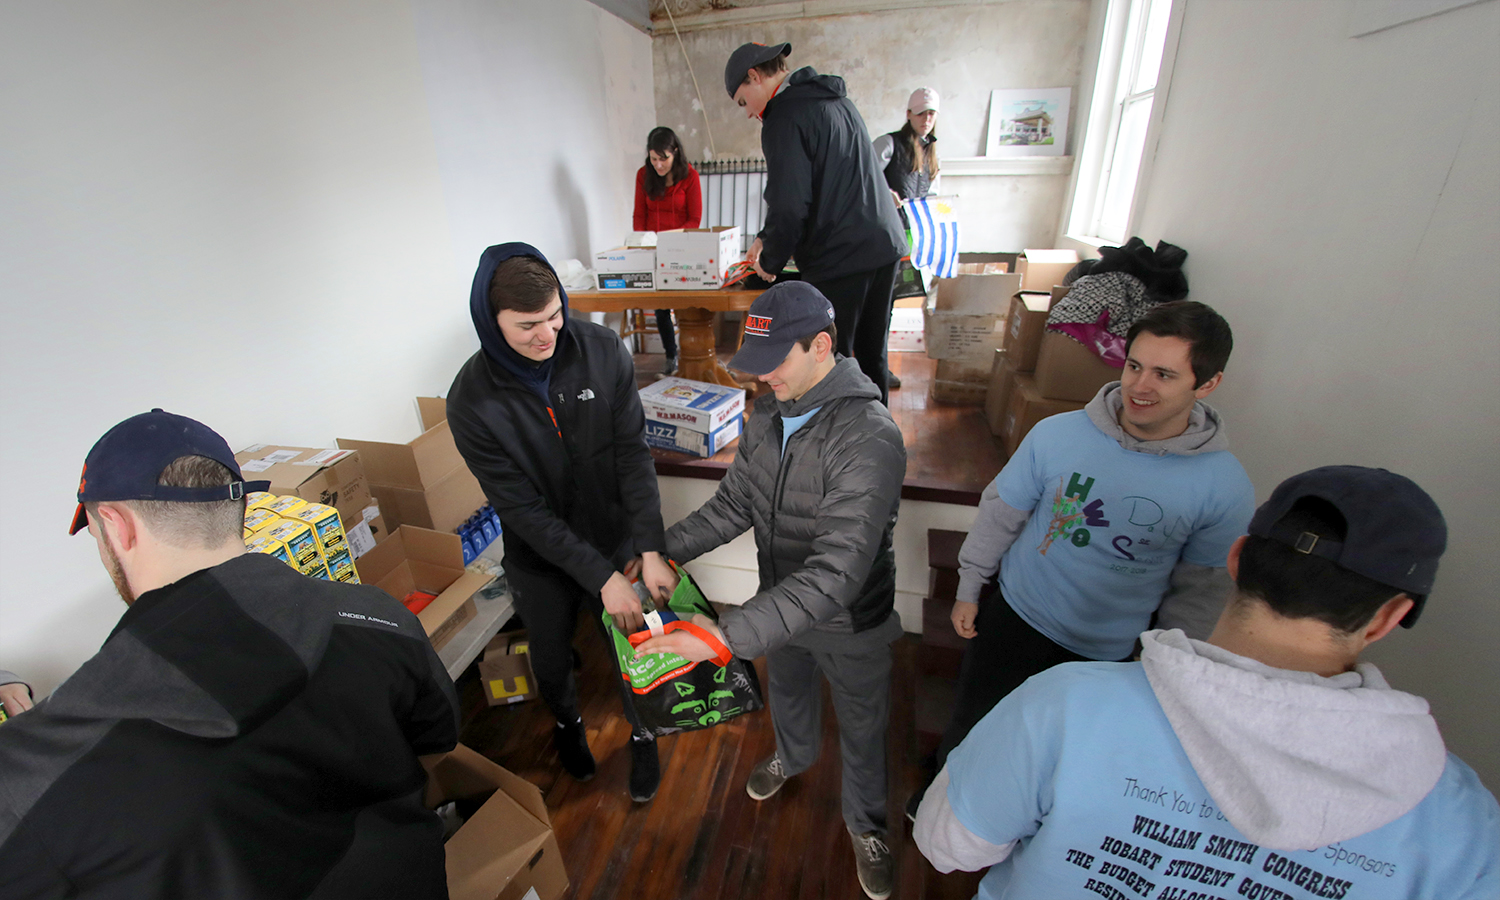 Students help Jackie Ausgustine (back, left), organizer for the Seneca7, prepare supplies for the upcoming race on April 29th in Geneva, N.Y.